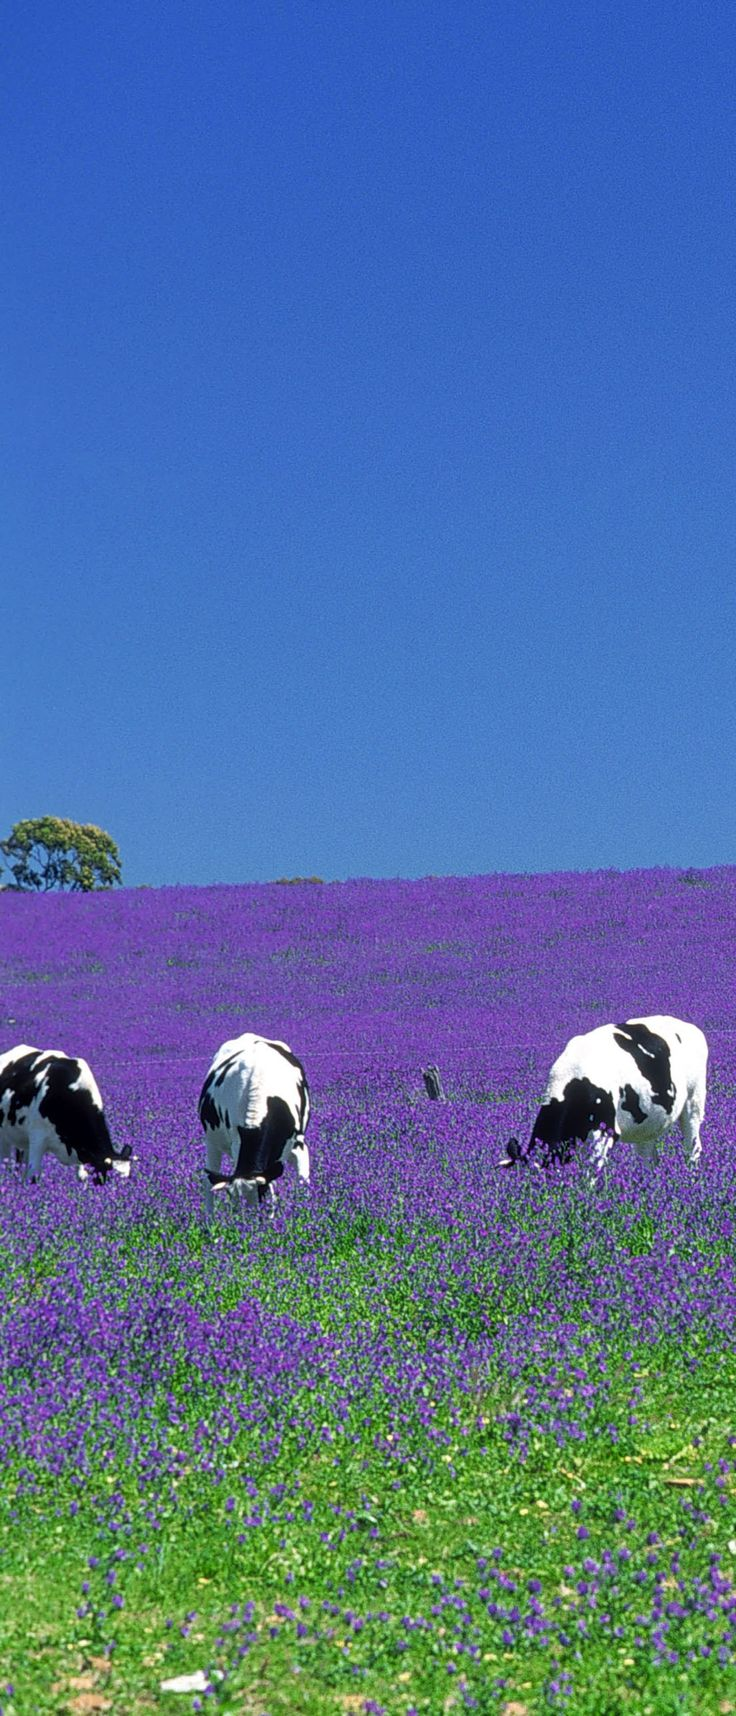 Cows grazing in Salvation Jane pasture, Clare Valley, South Australia.